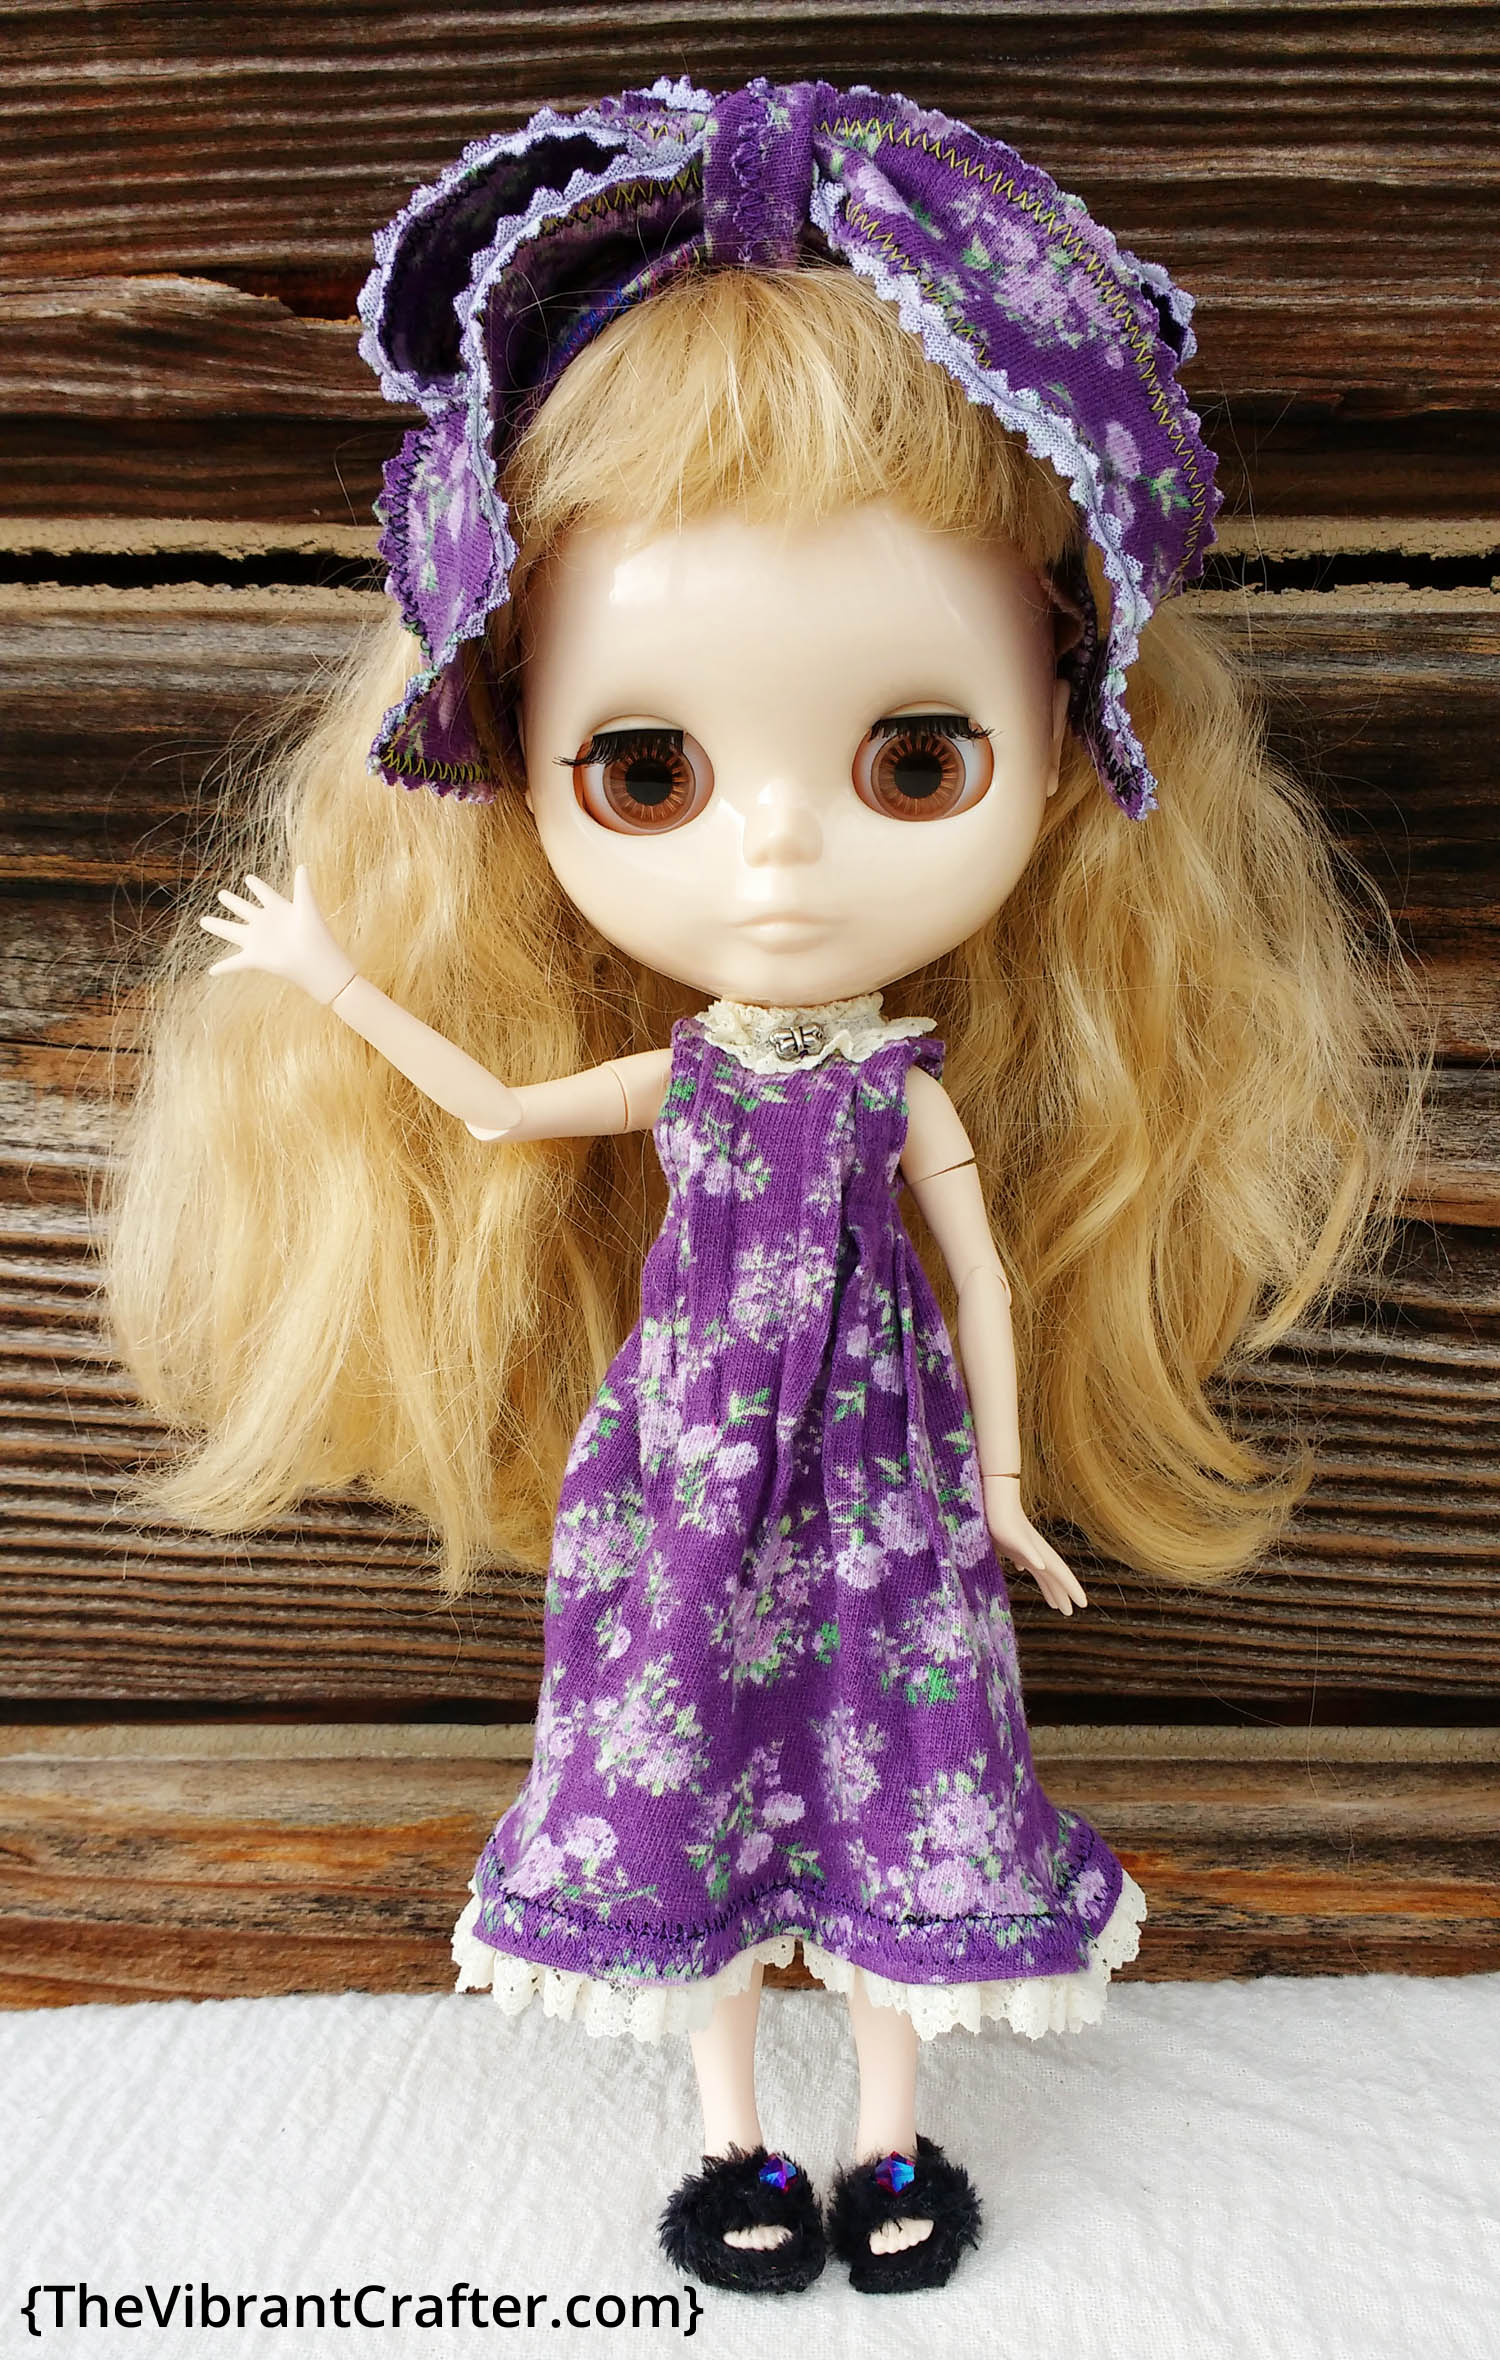 Factory Blythe Doll in a Purple Dress